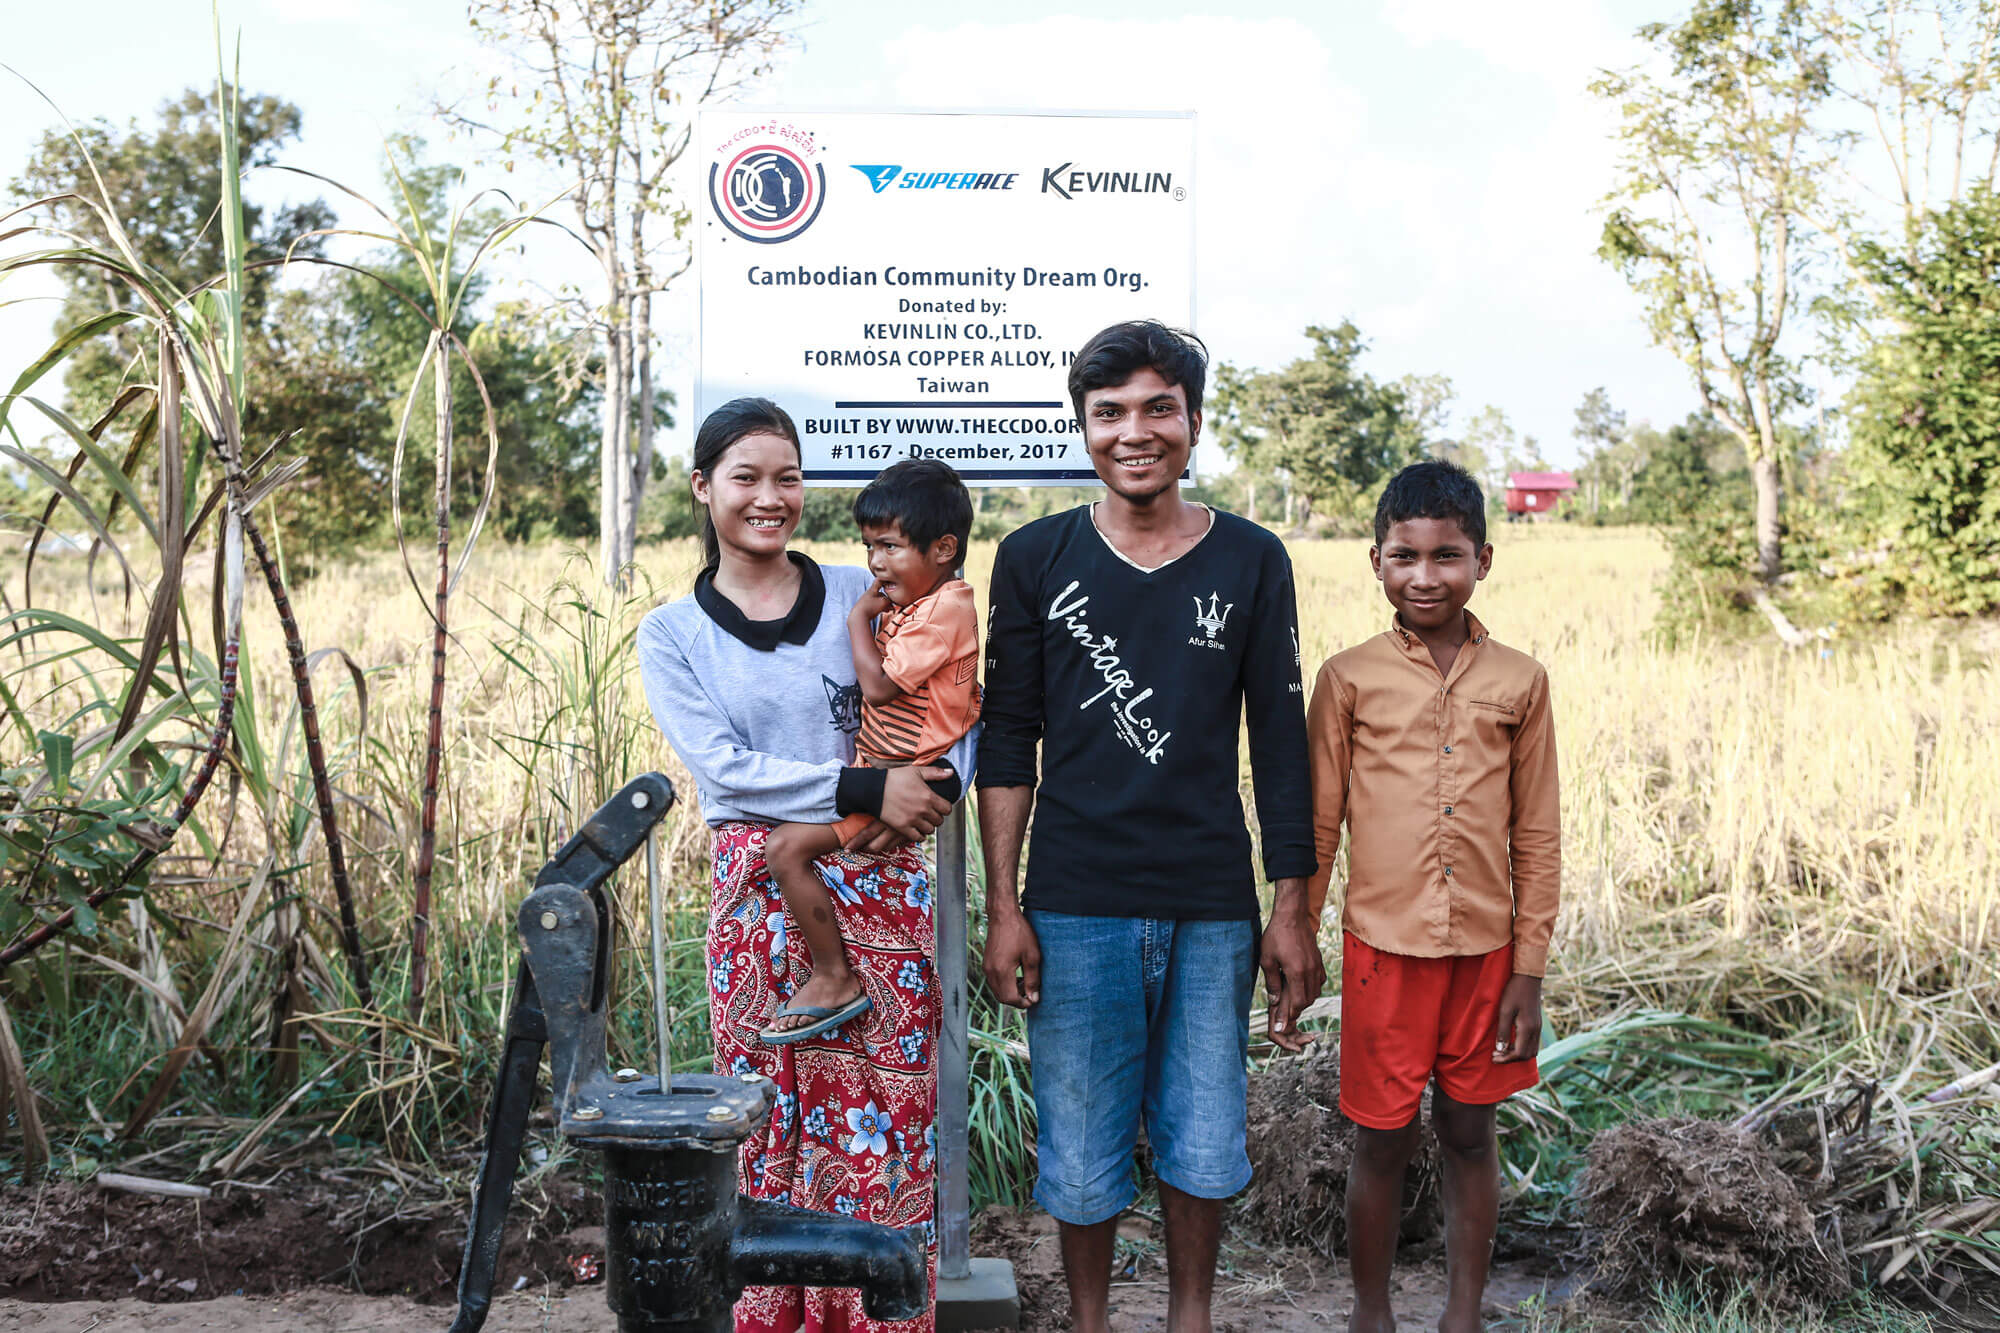 The happy family supported with a water well